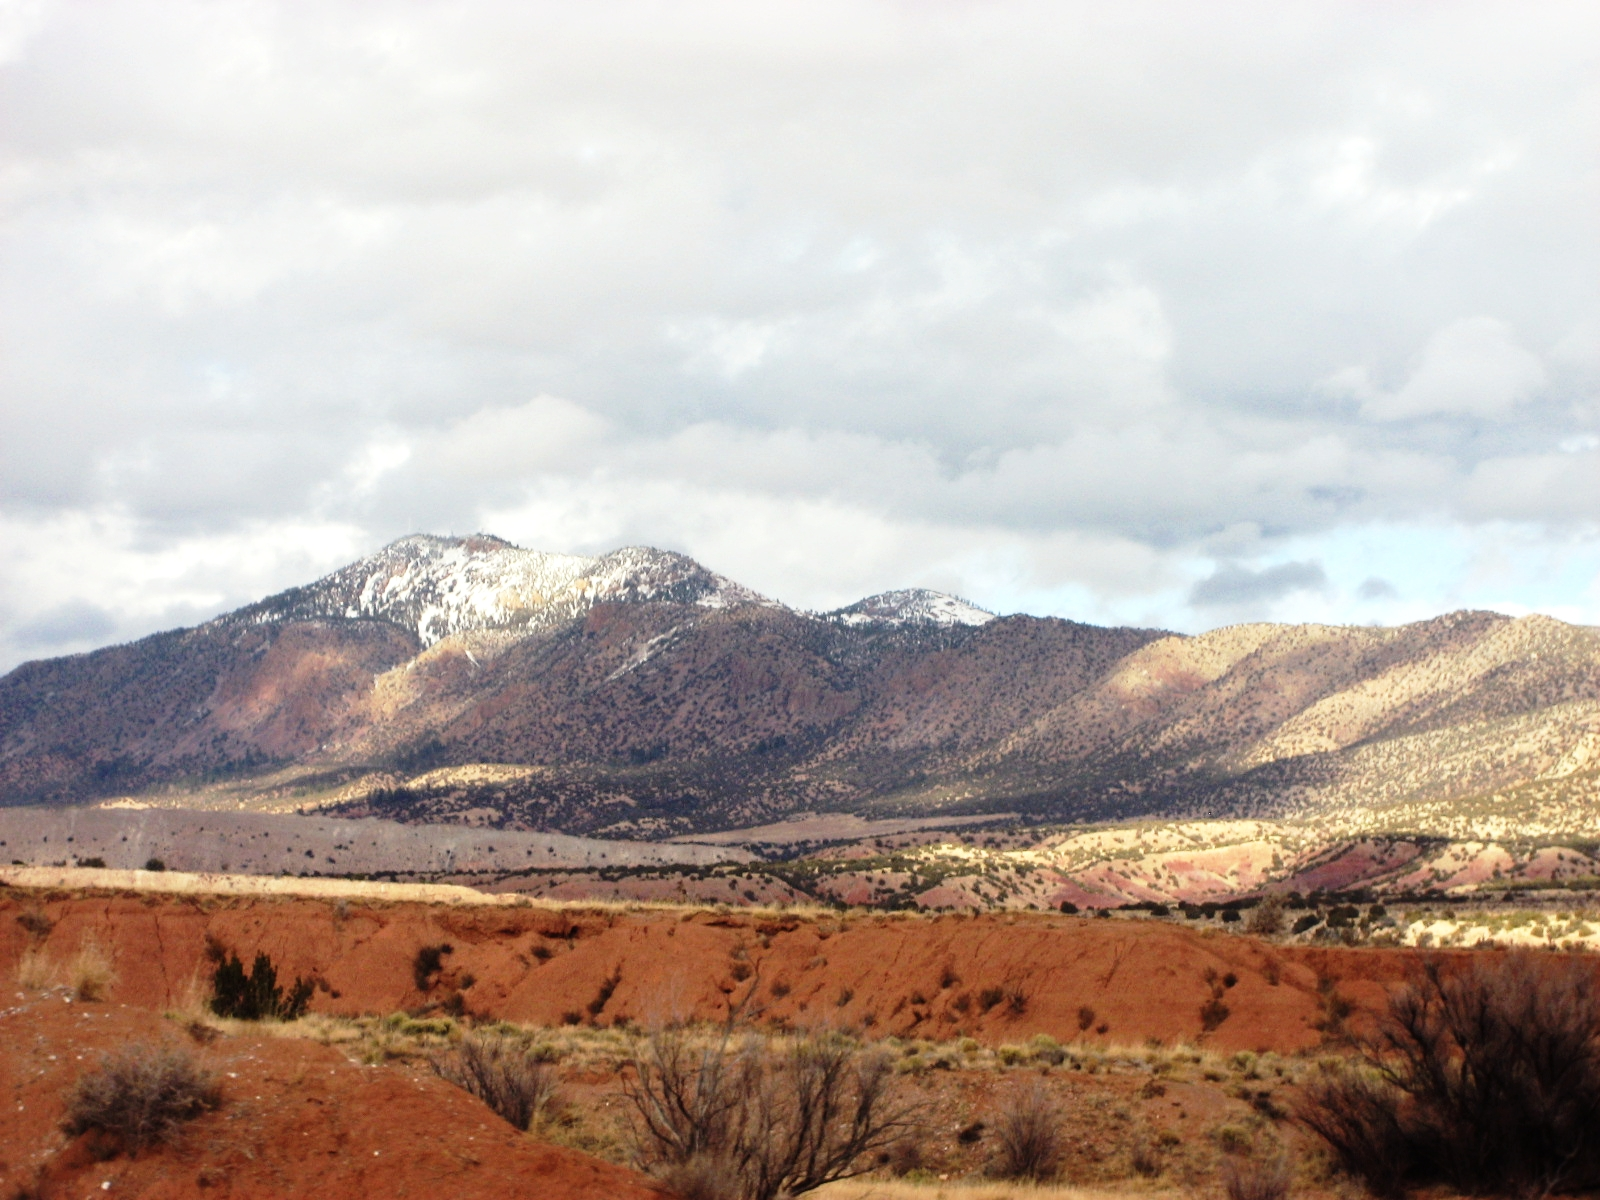 The land of enchantment. Photo taken out the car window while traveling between Santa Fe and Albuquerque, New Mexico. Years ago my parents moved here. They had enough of the winters in the Midwest, I get it.